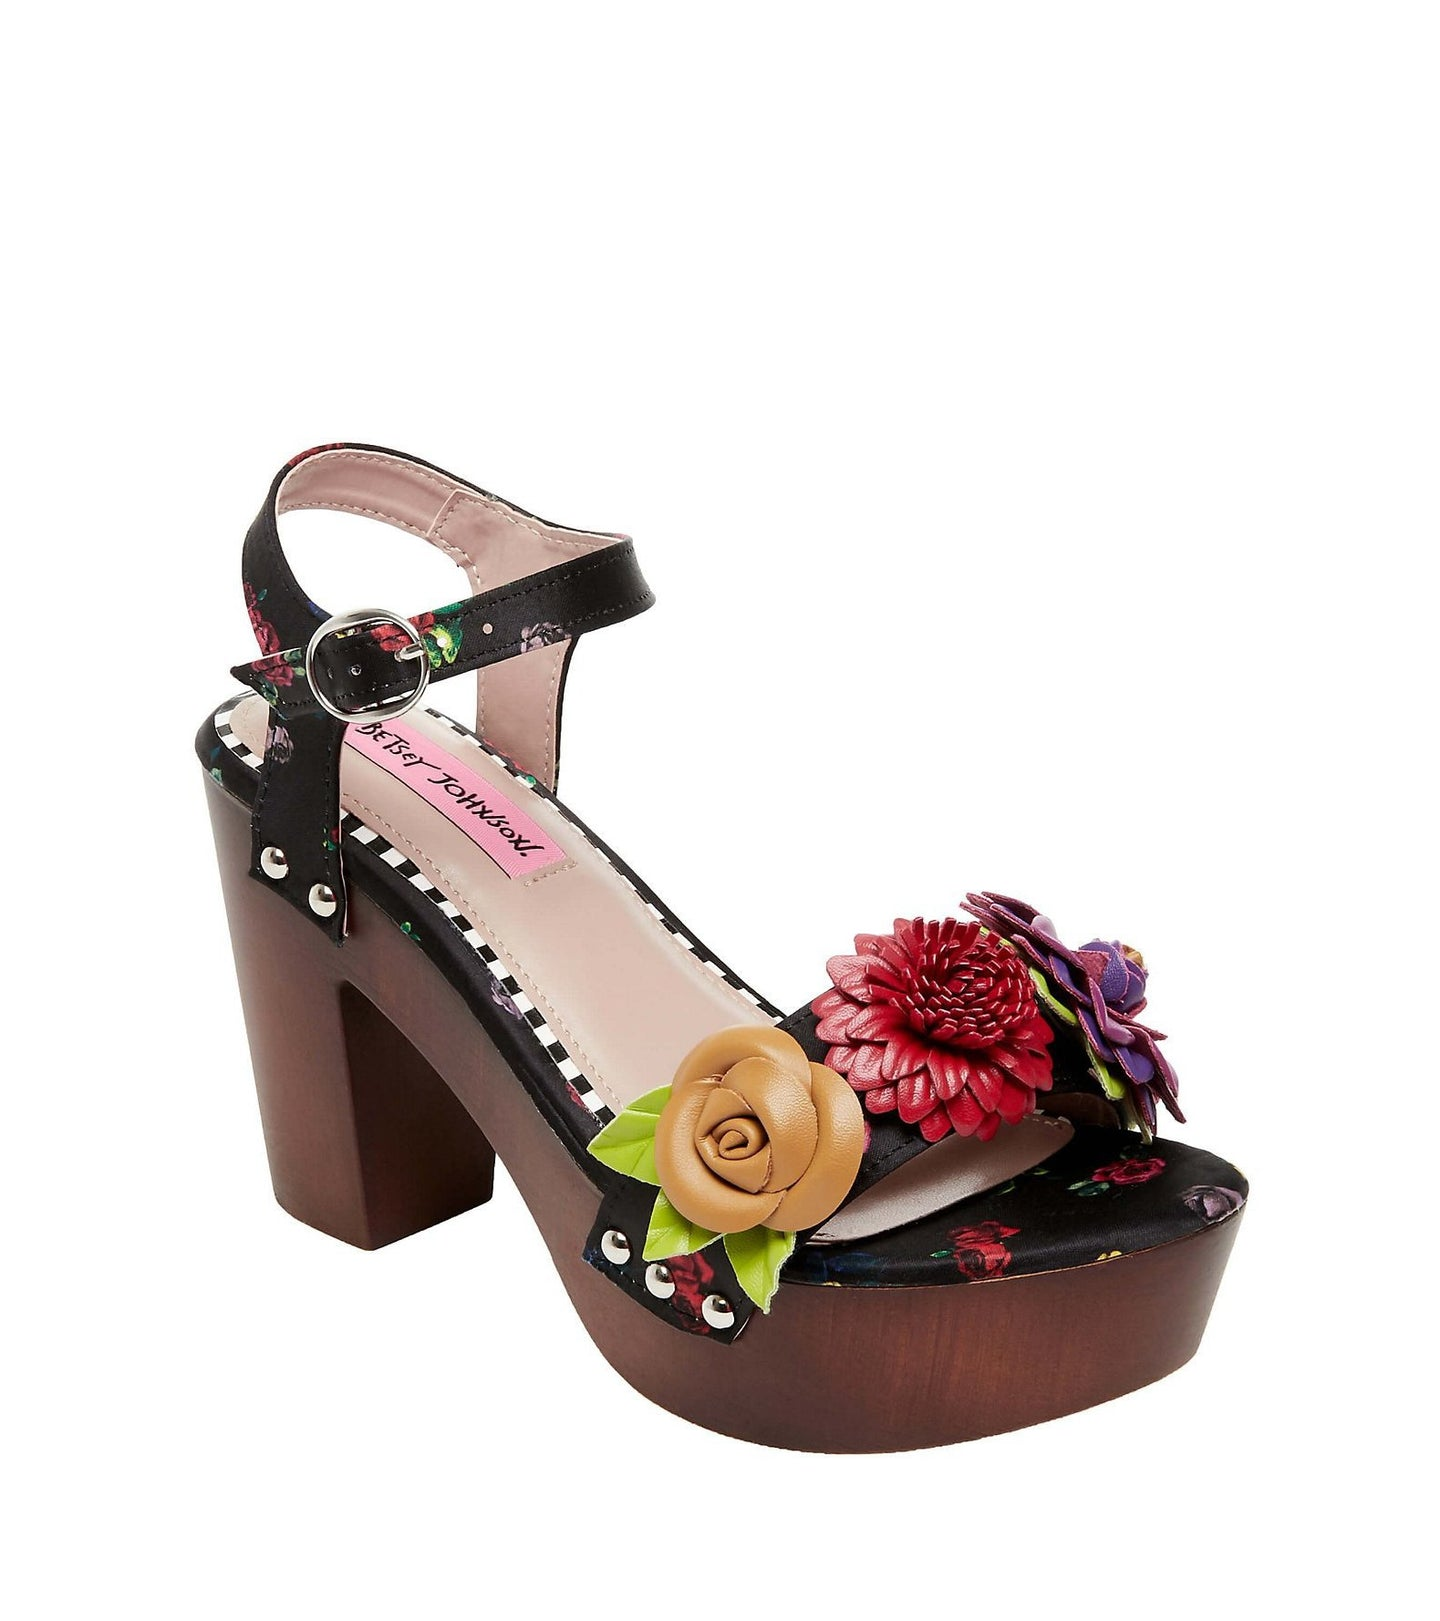 ROSEE BLACK MULTI - SHOES - Betsey Johnson